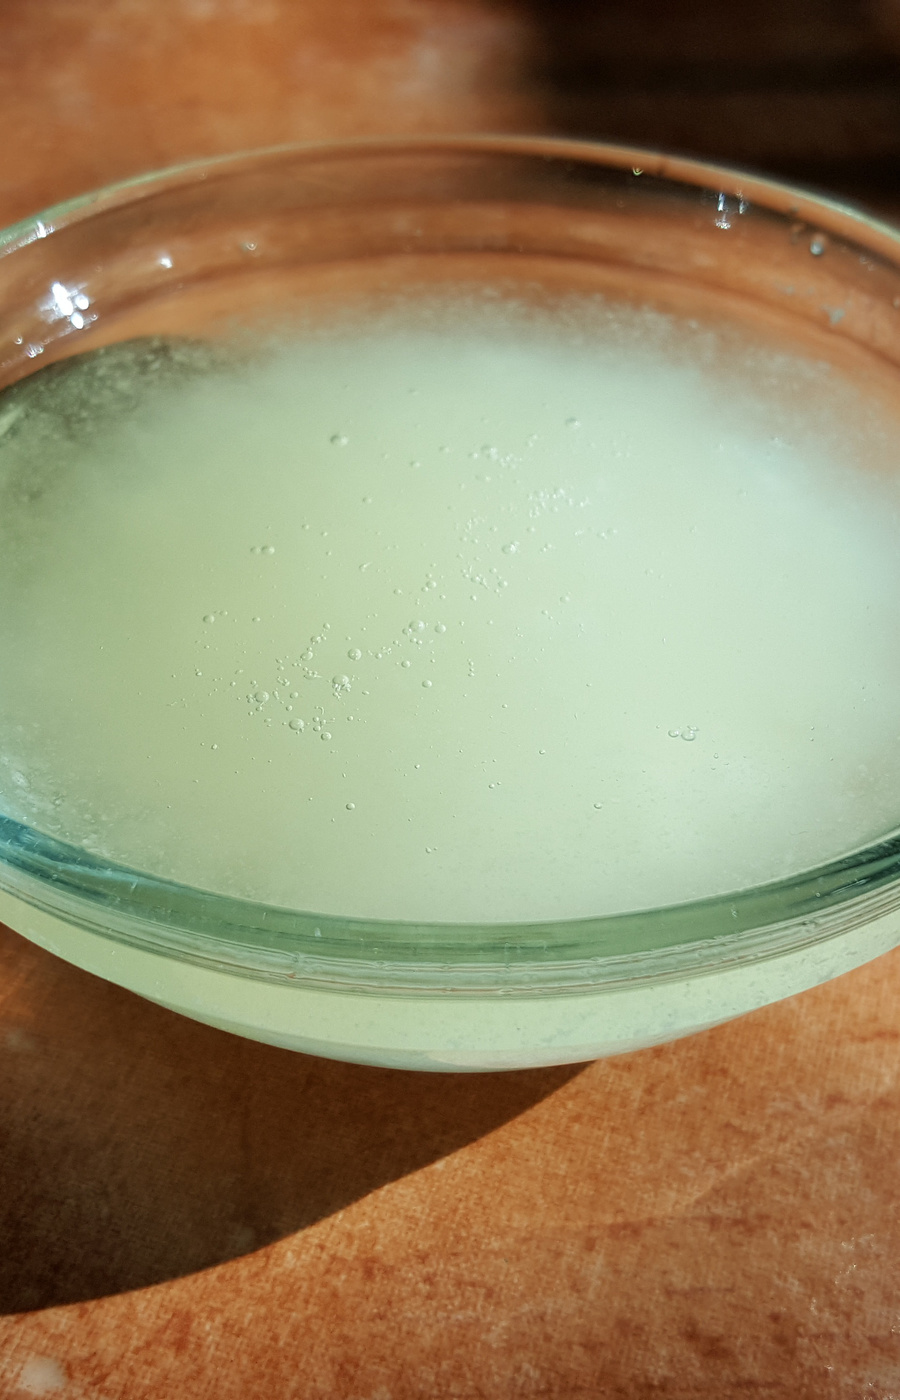 coconut-oil-1469337.jpg